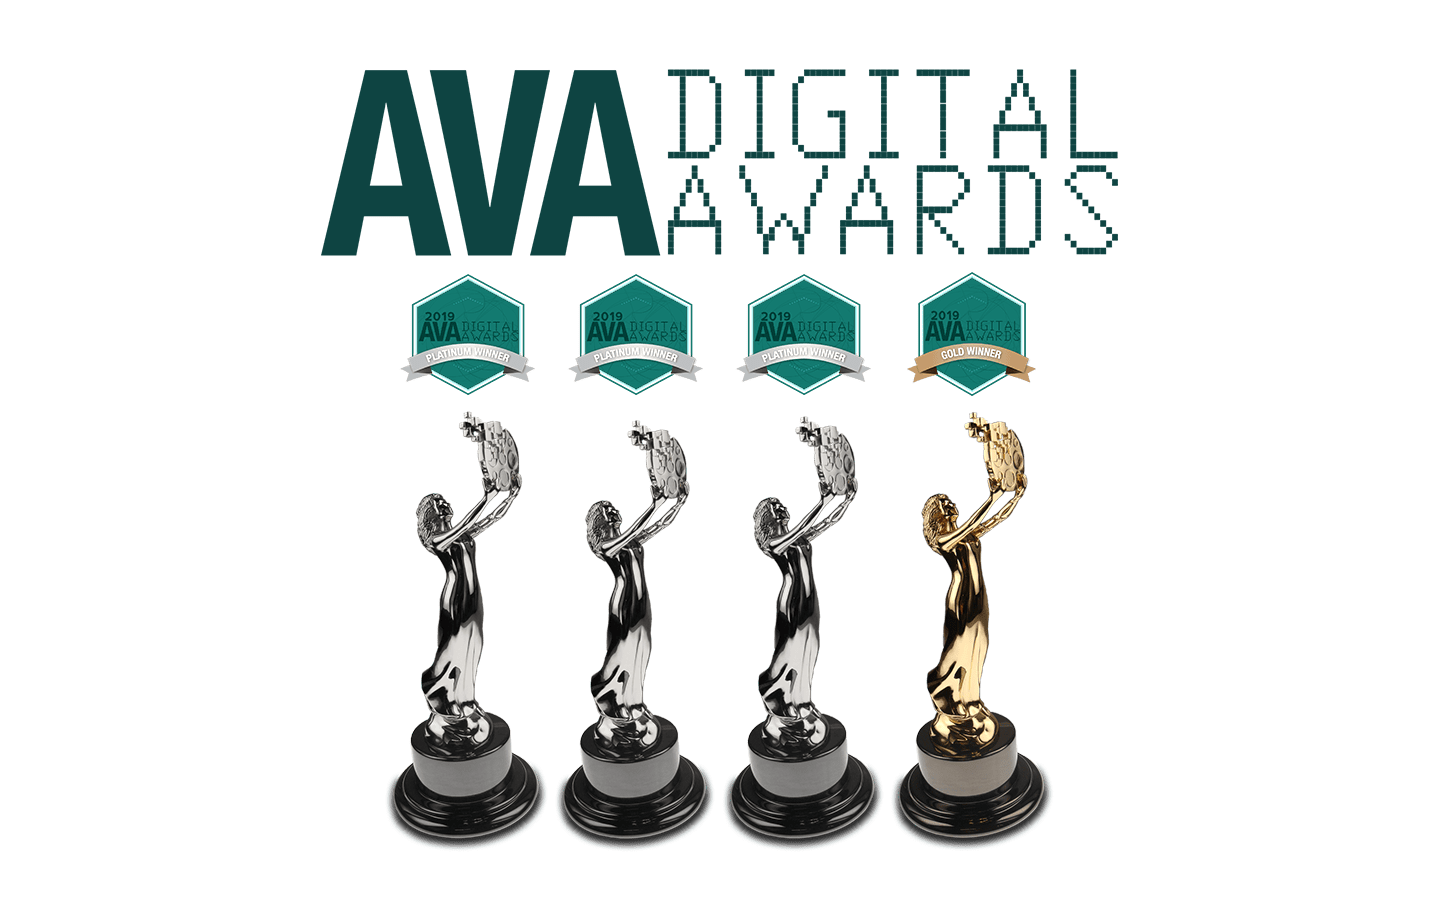 AVA Digital Awards - Content Creatures